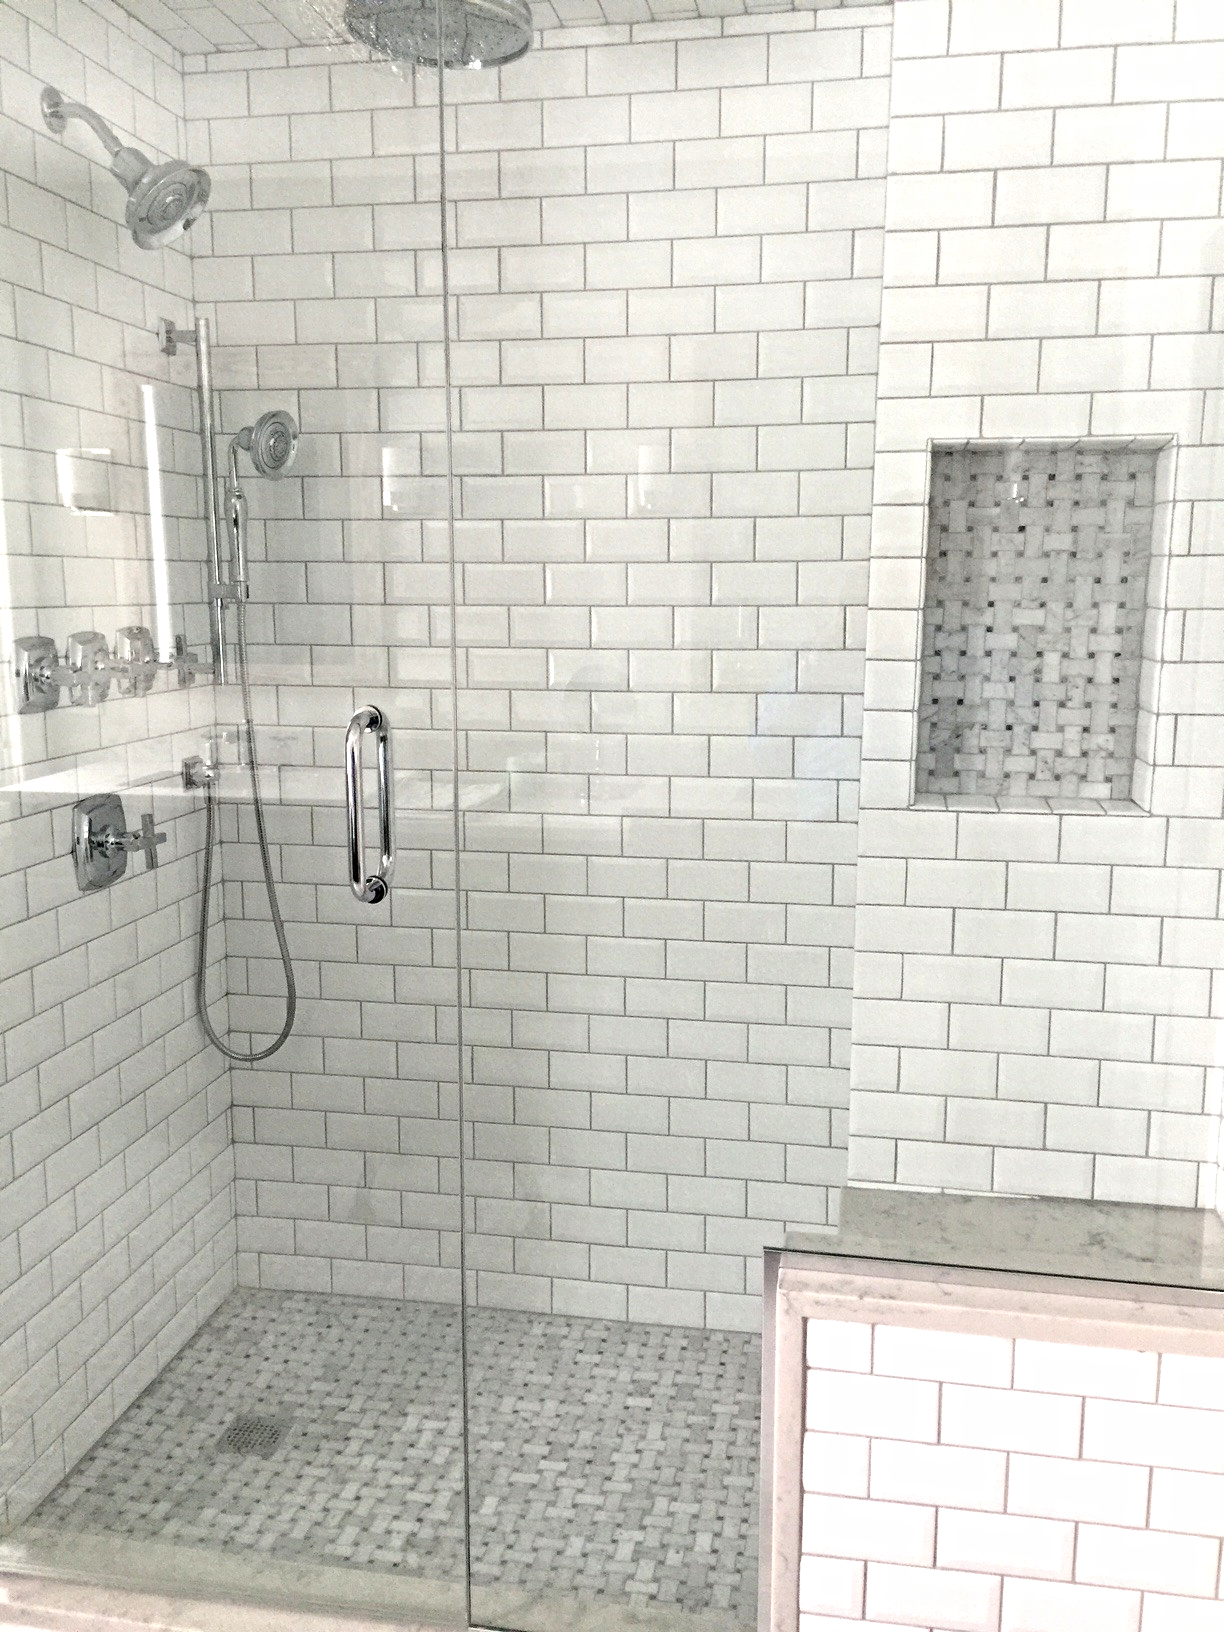 The frameless glass, bench, and alcove bring the shower into the 21st century.